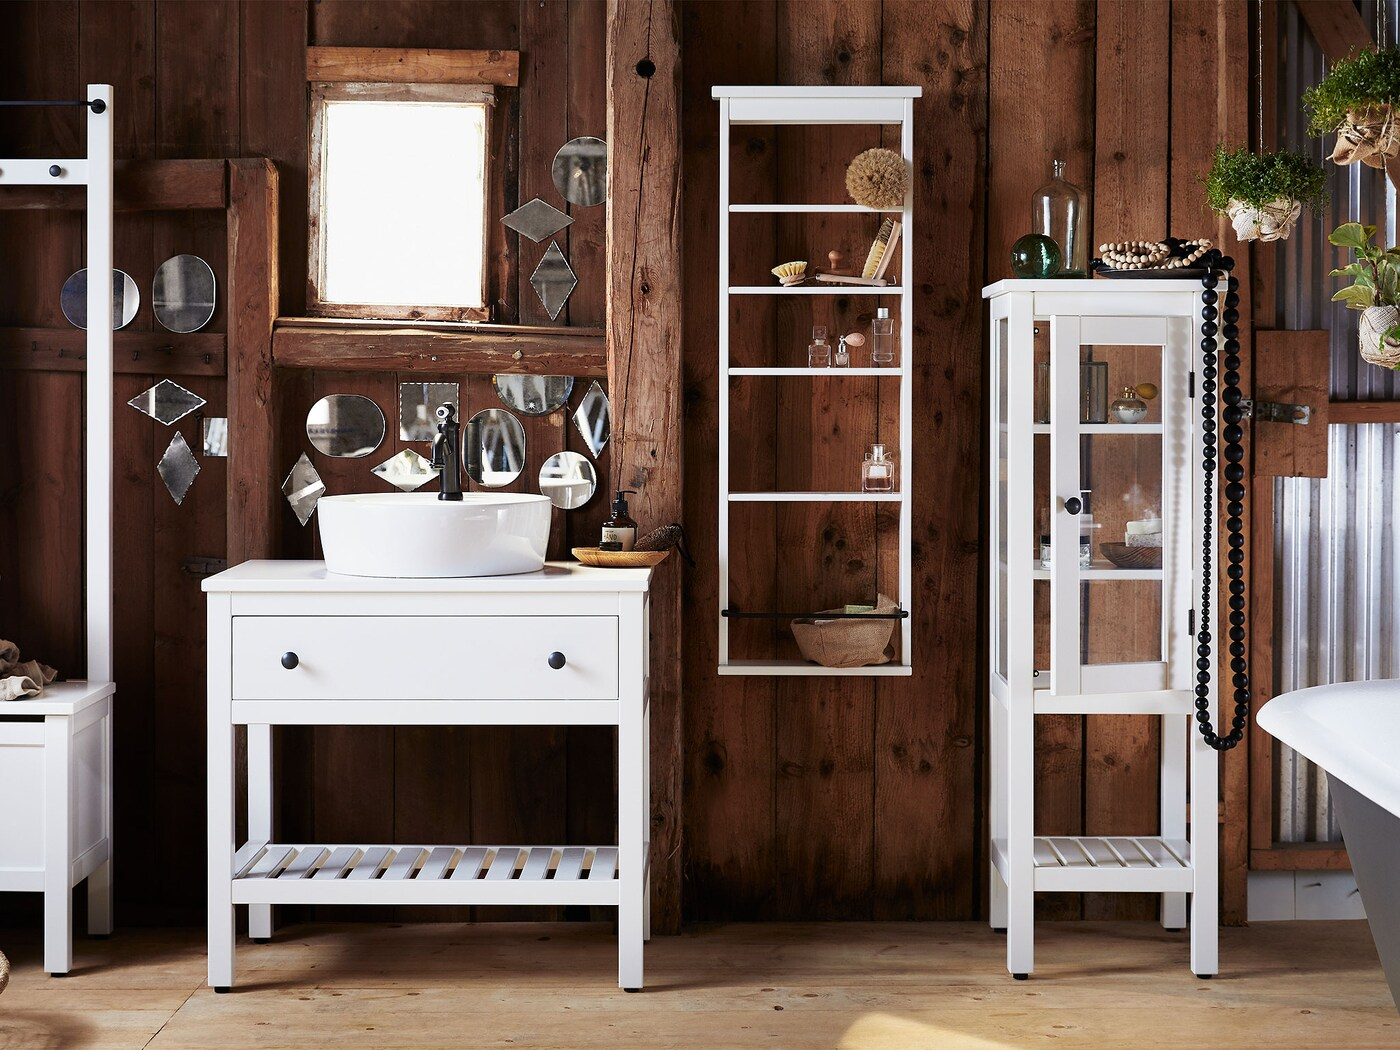 The Four White Stained Pine Storage Pieces Of HEMNES Bathroom Furniture  Series Are Shown In